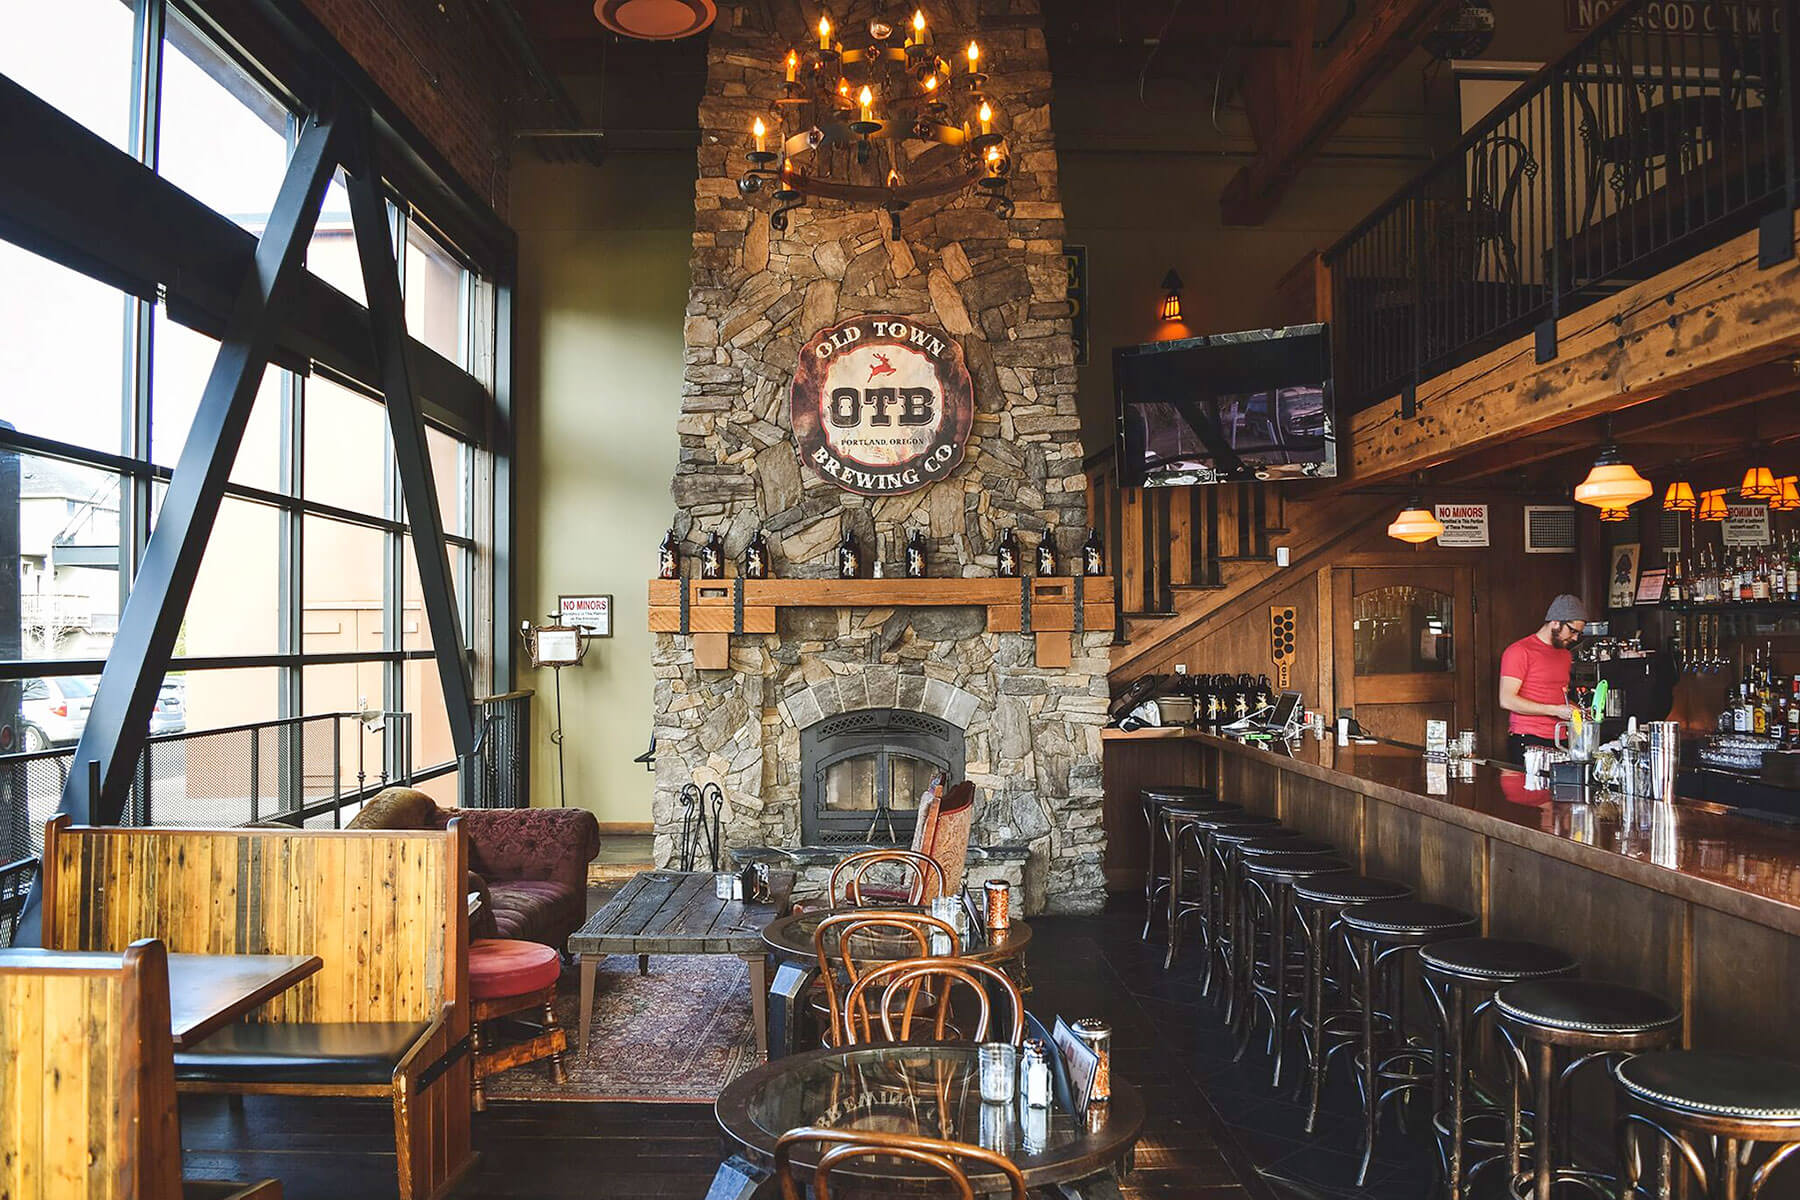 Inside the Old Town Brewing Northeast Brewery taproom in Portland, Oregon